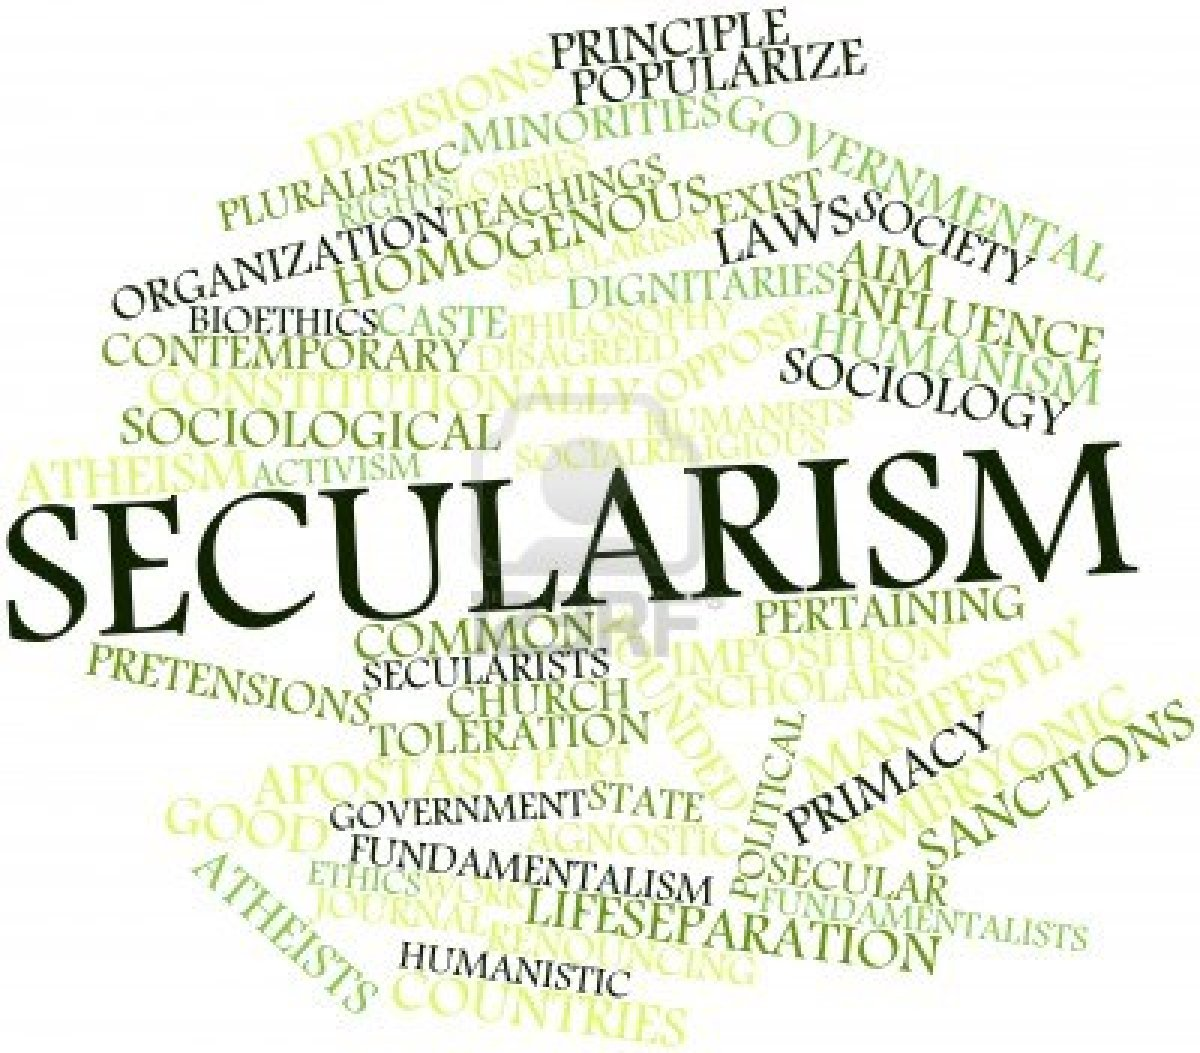 contemporary religion secularisation thesis The withering of organised religion and religious element of traditional secularisation theory that is most widely questioned among contemporary sociologists of religion is the claim that modernisation leads (inevitably) to the decline of religion.